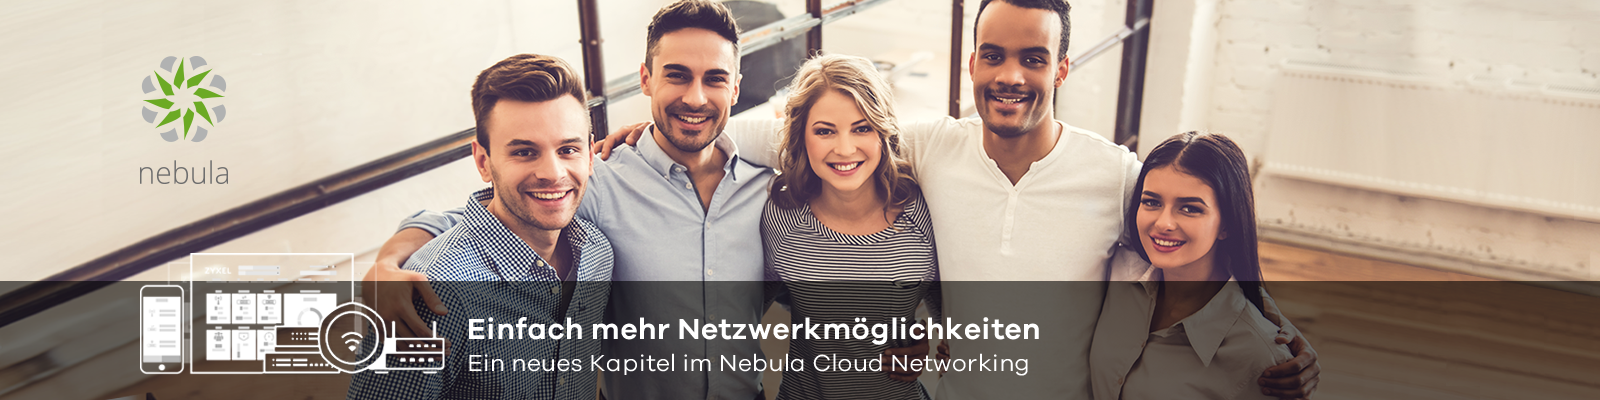 Nebula Embracing More Network Possibilities